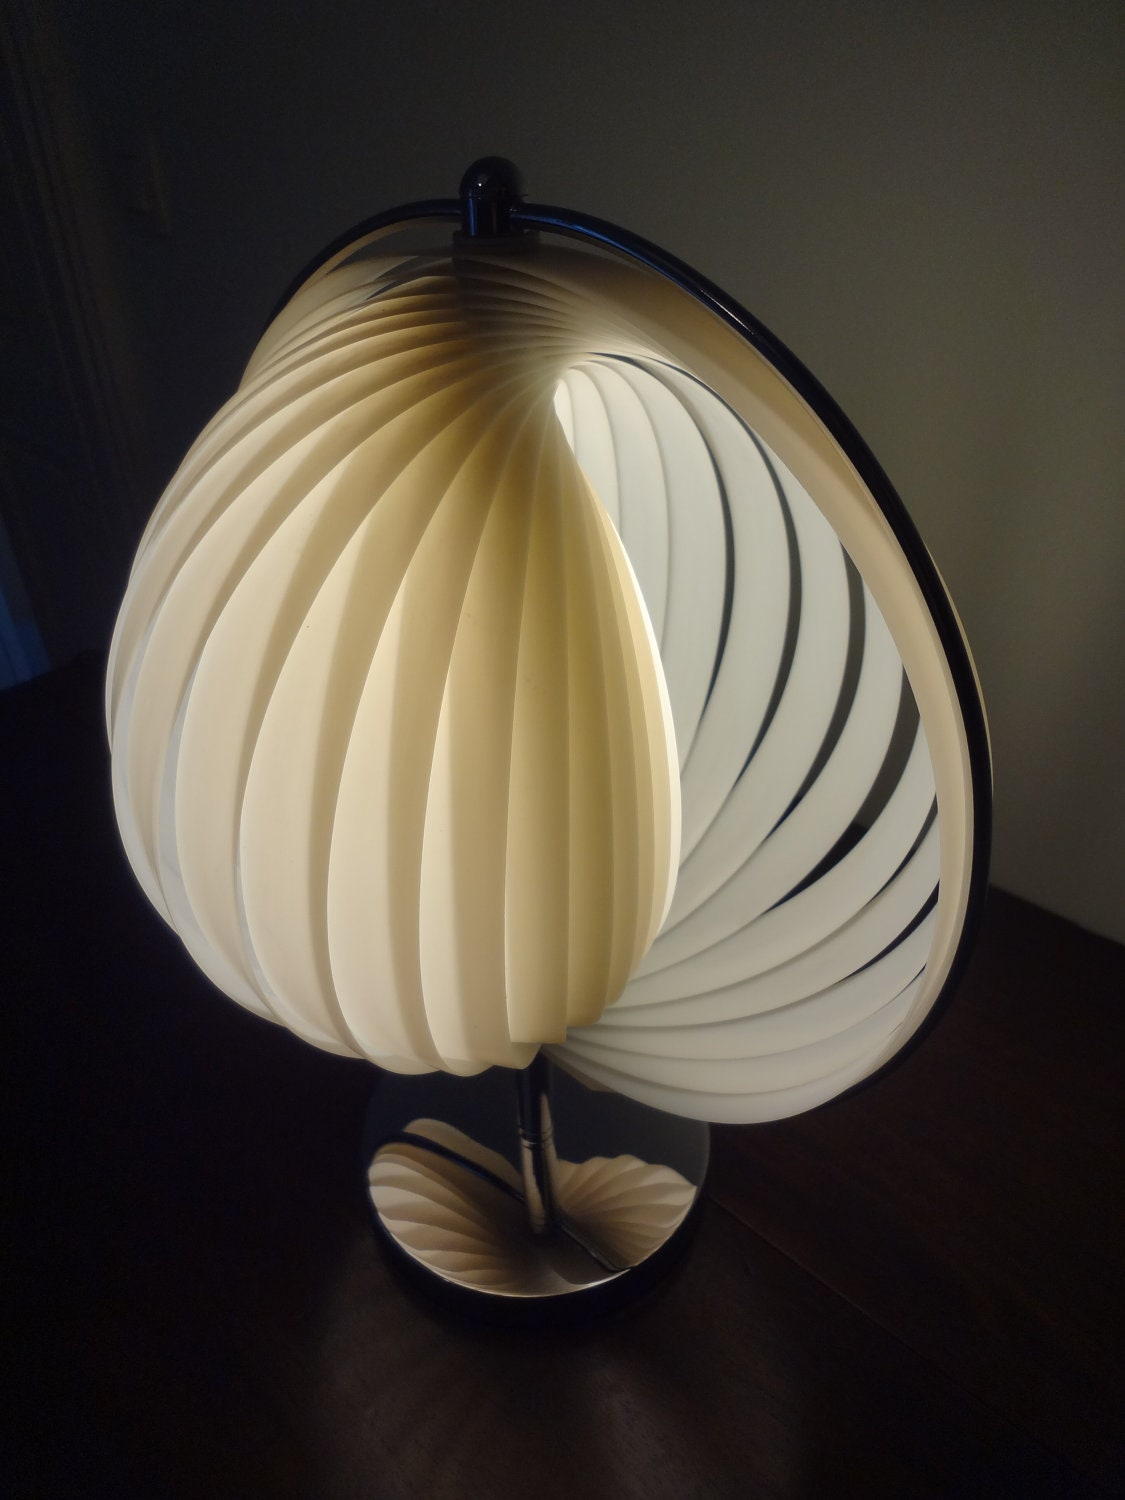 Verner panton moon lamp table lamp 1960s perfect condition